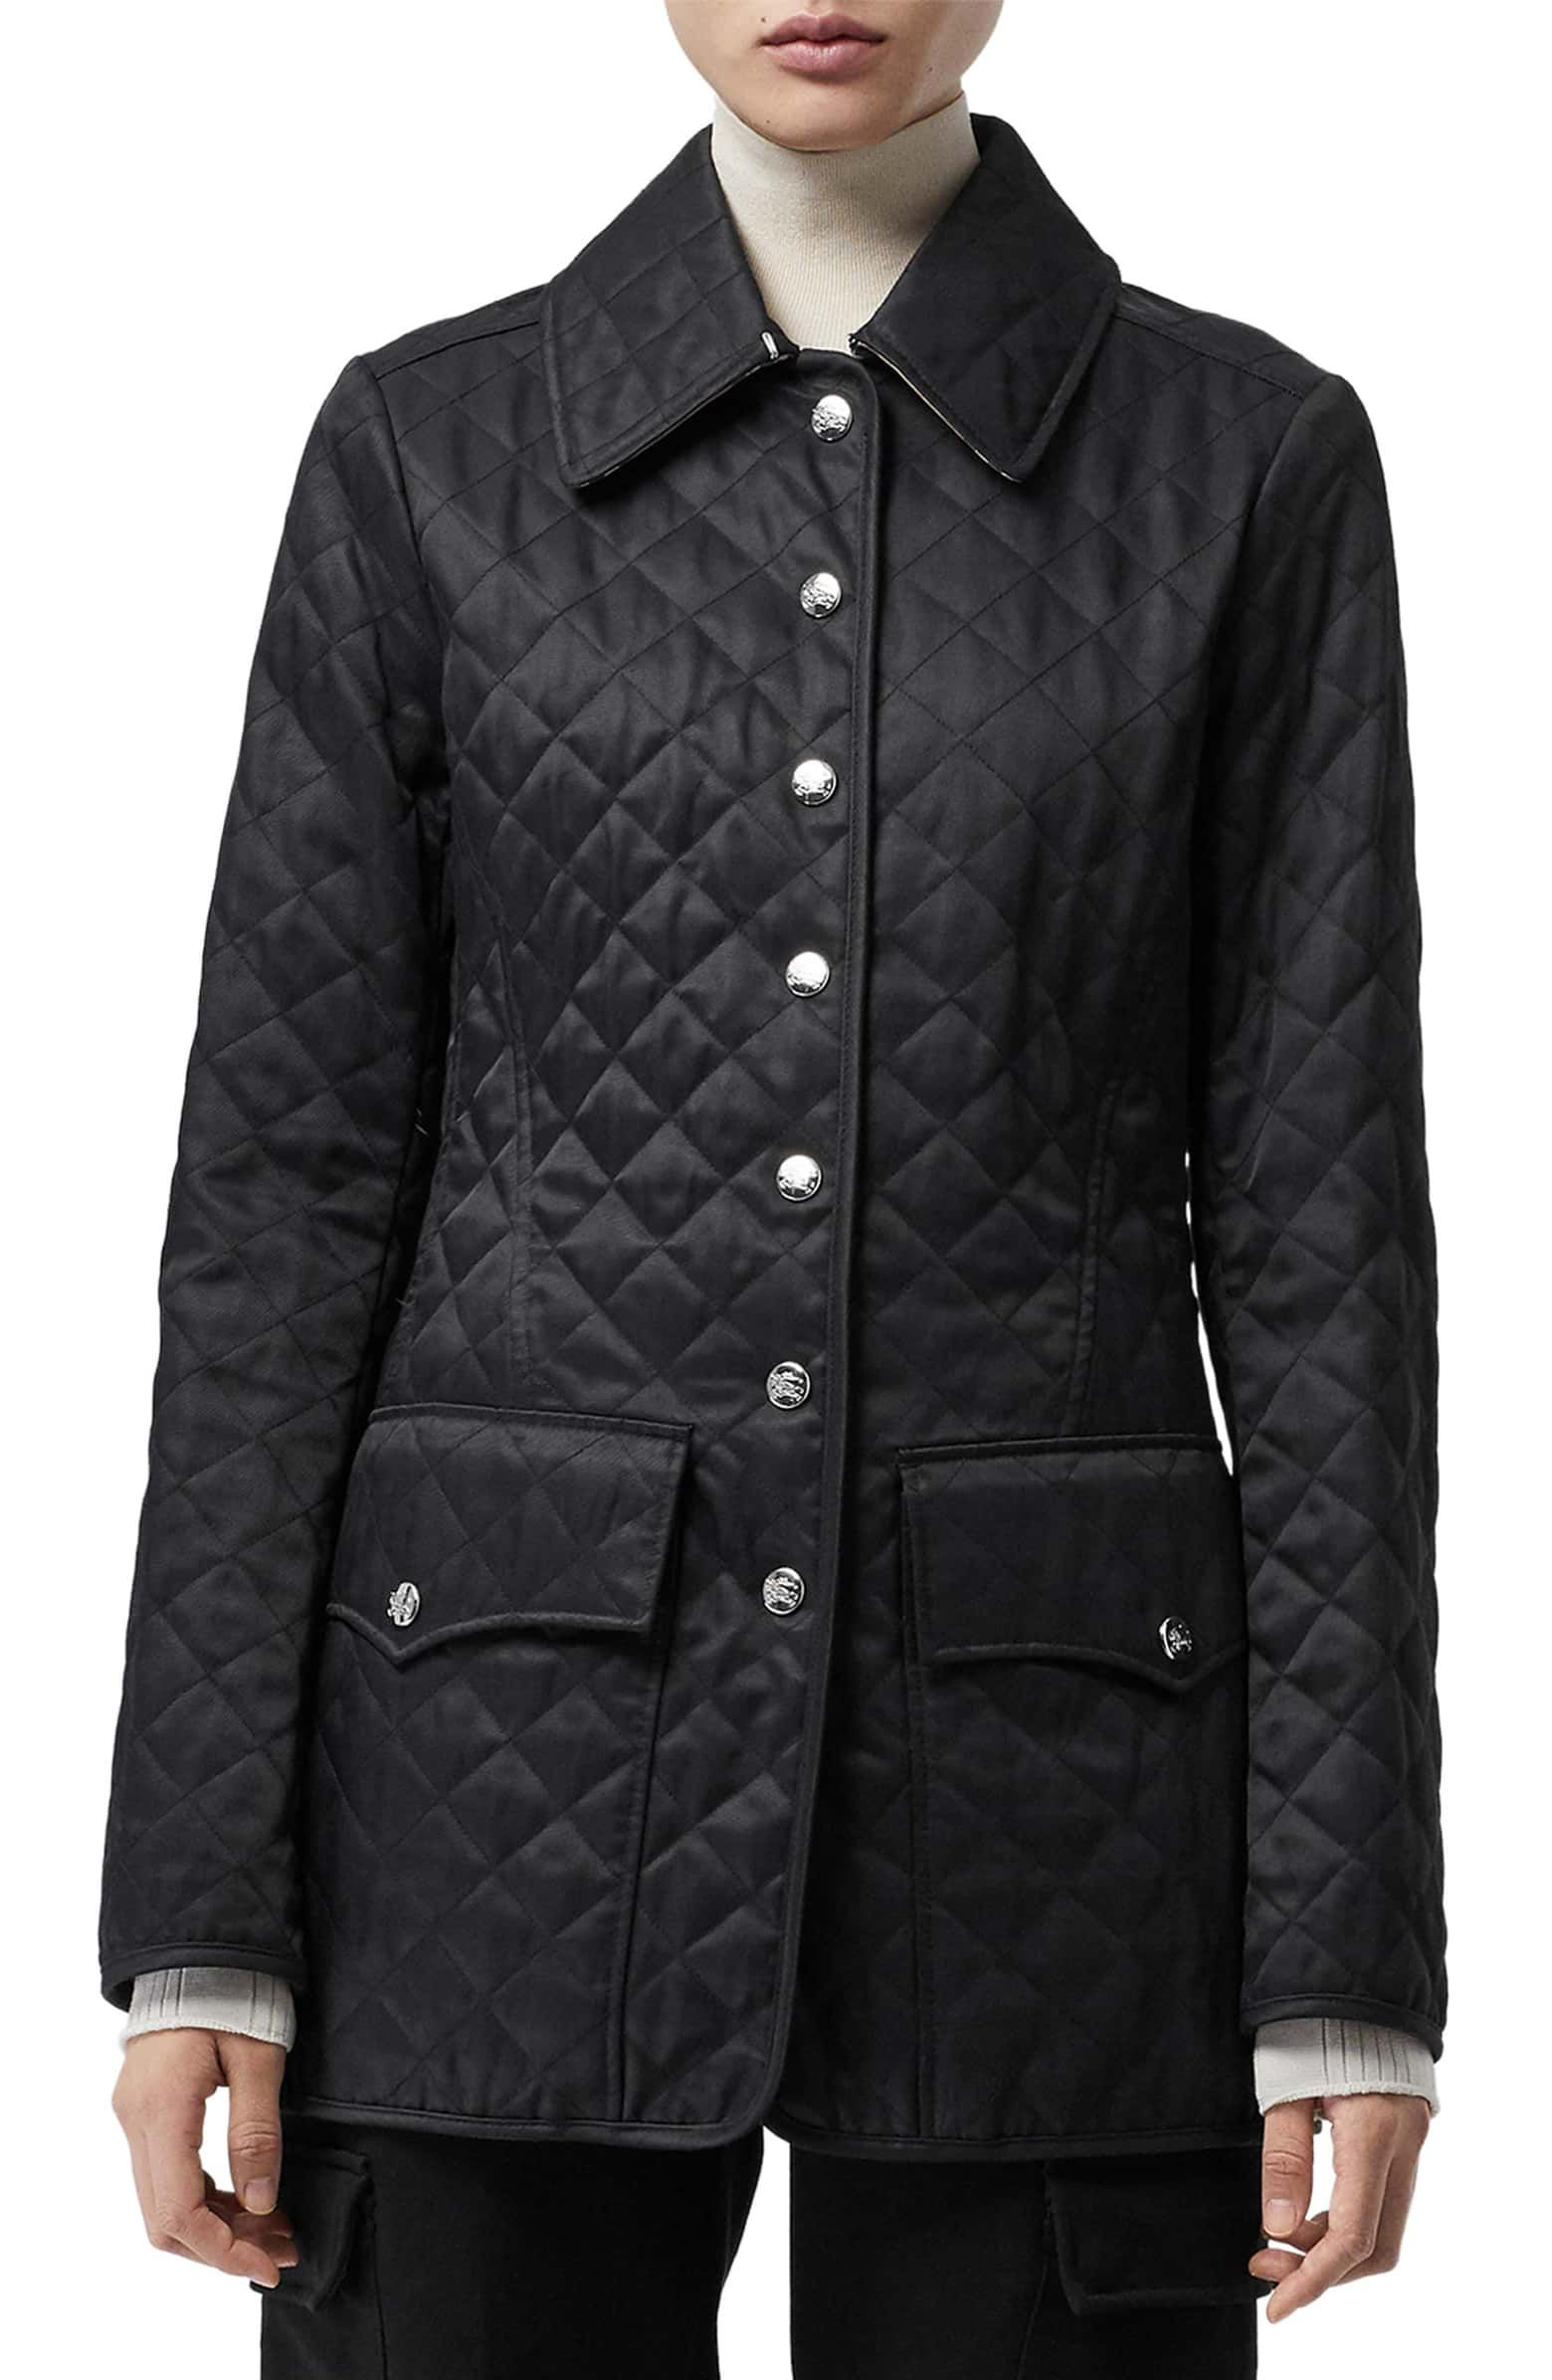 Borthwicke Quilted Jacket Main Color Black Quilted Jacket Jackets Jacket Sale